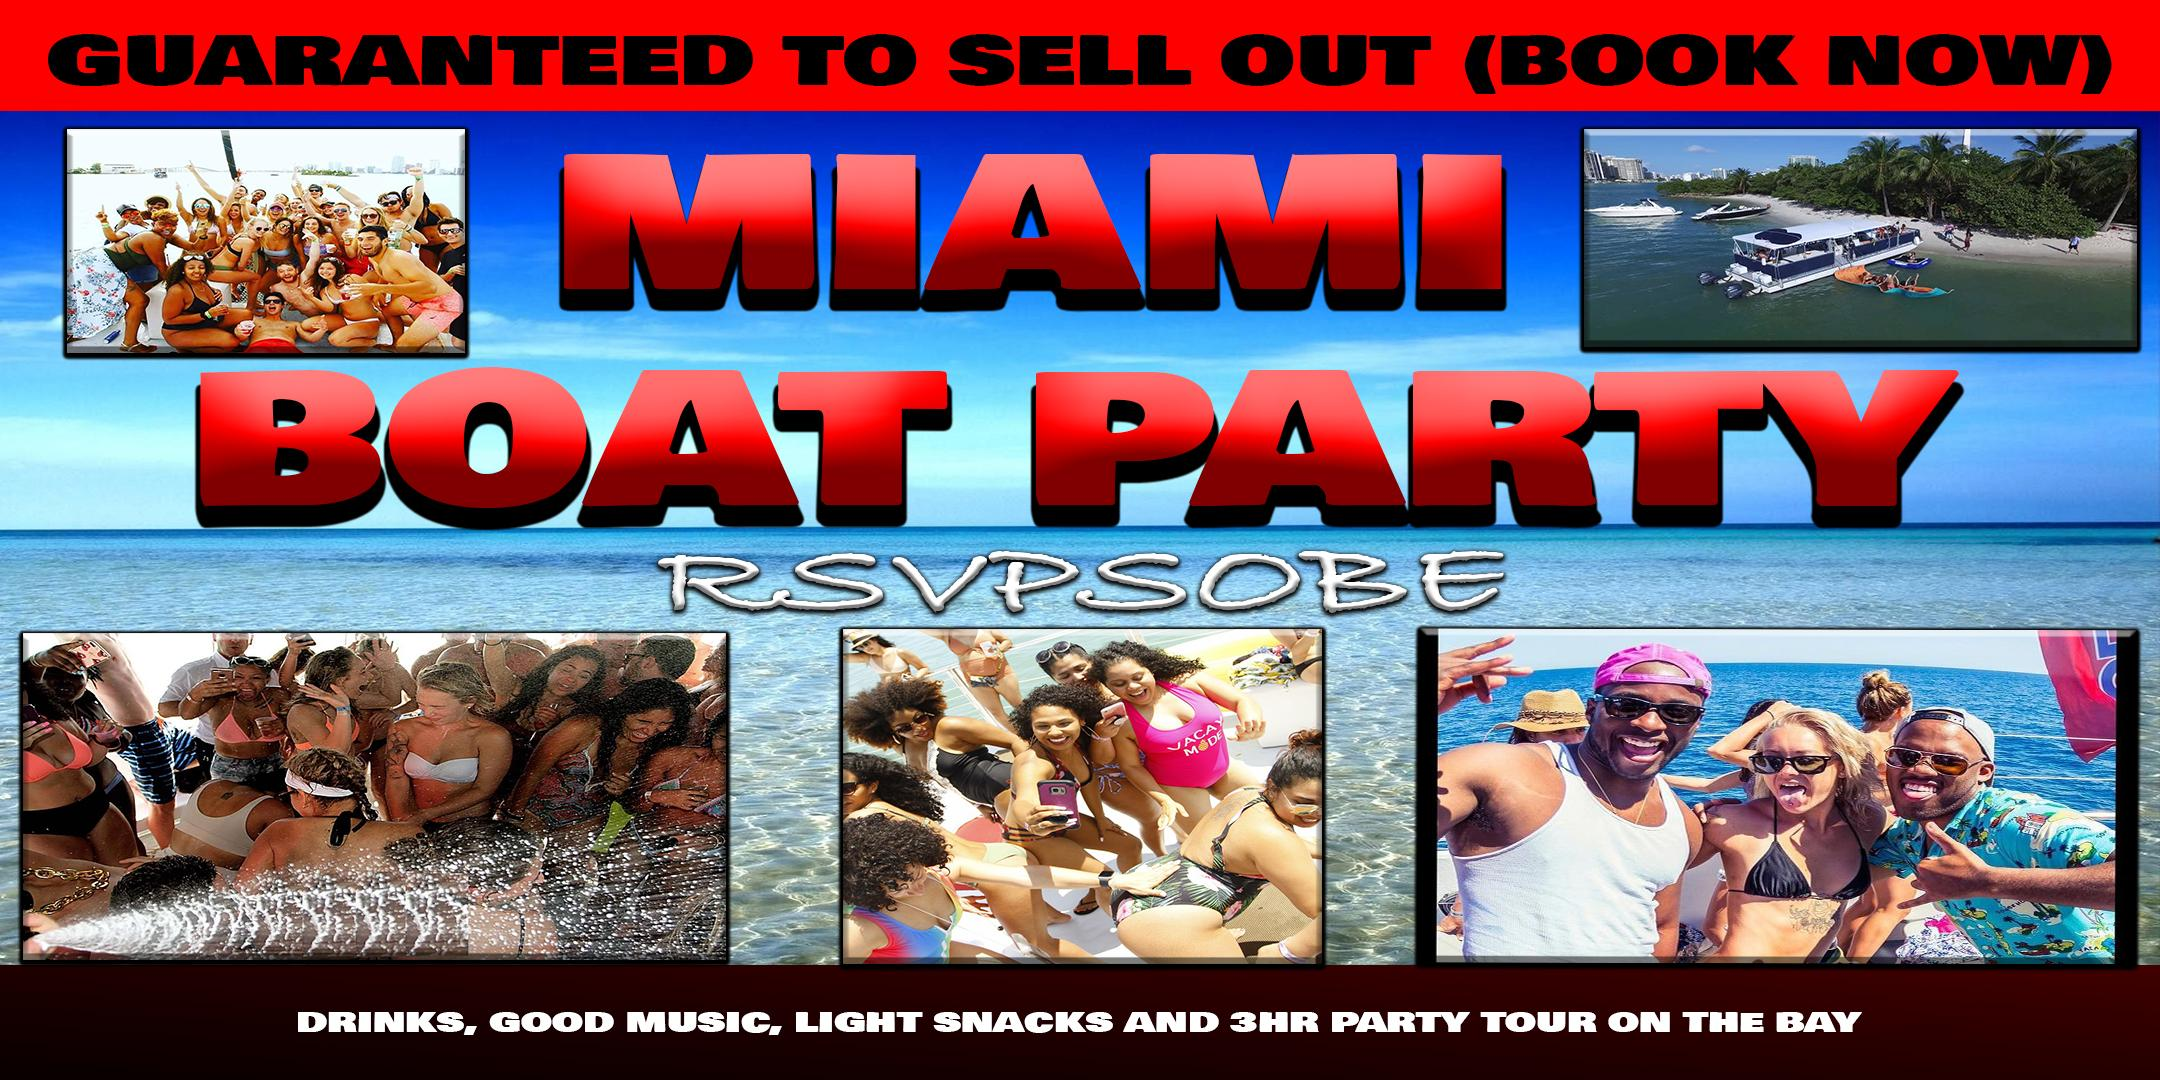 Encore Night Boat Party (first 50 people only) WILL SELL OUT!!! EARLY RSVP